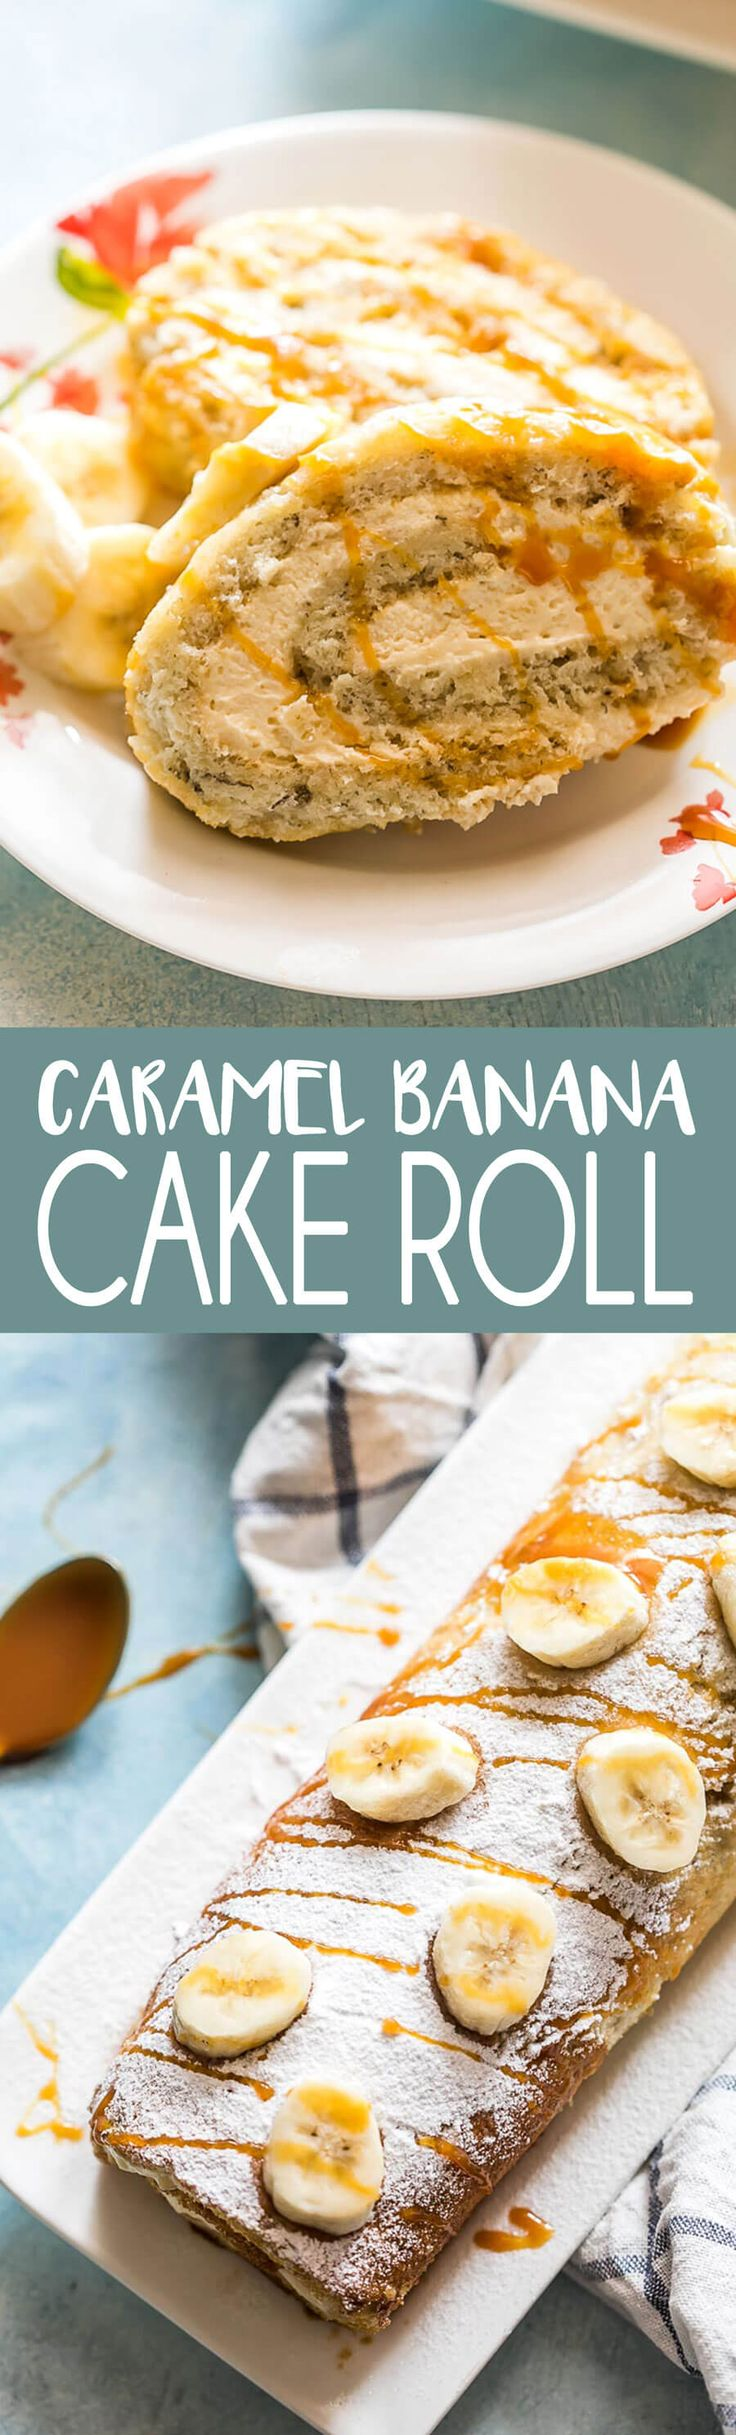 Caramel Banana Cake Roll: A fluffy sponge cake, a creamy delicious filling, and one of the best flavor combinations in the world--Banana + Caramel!